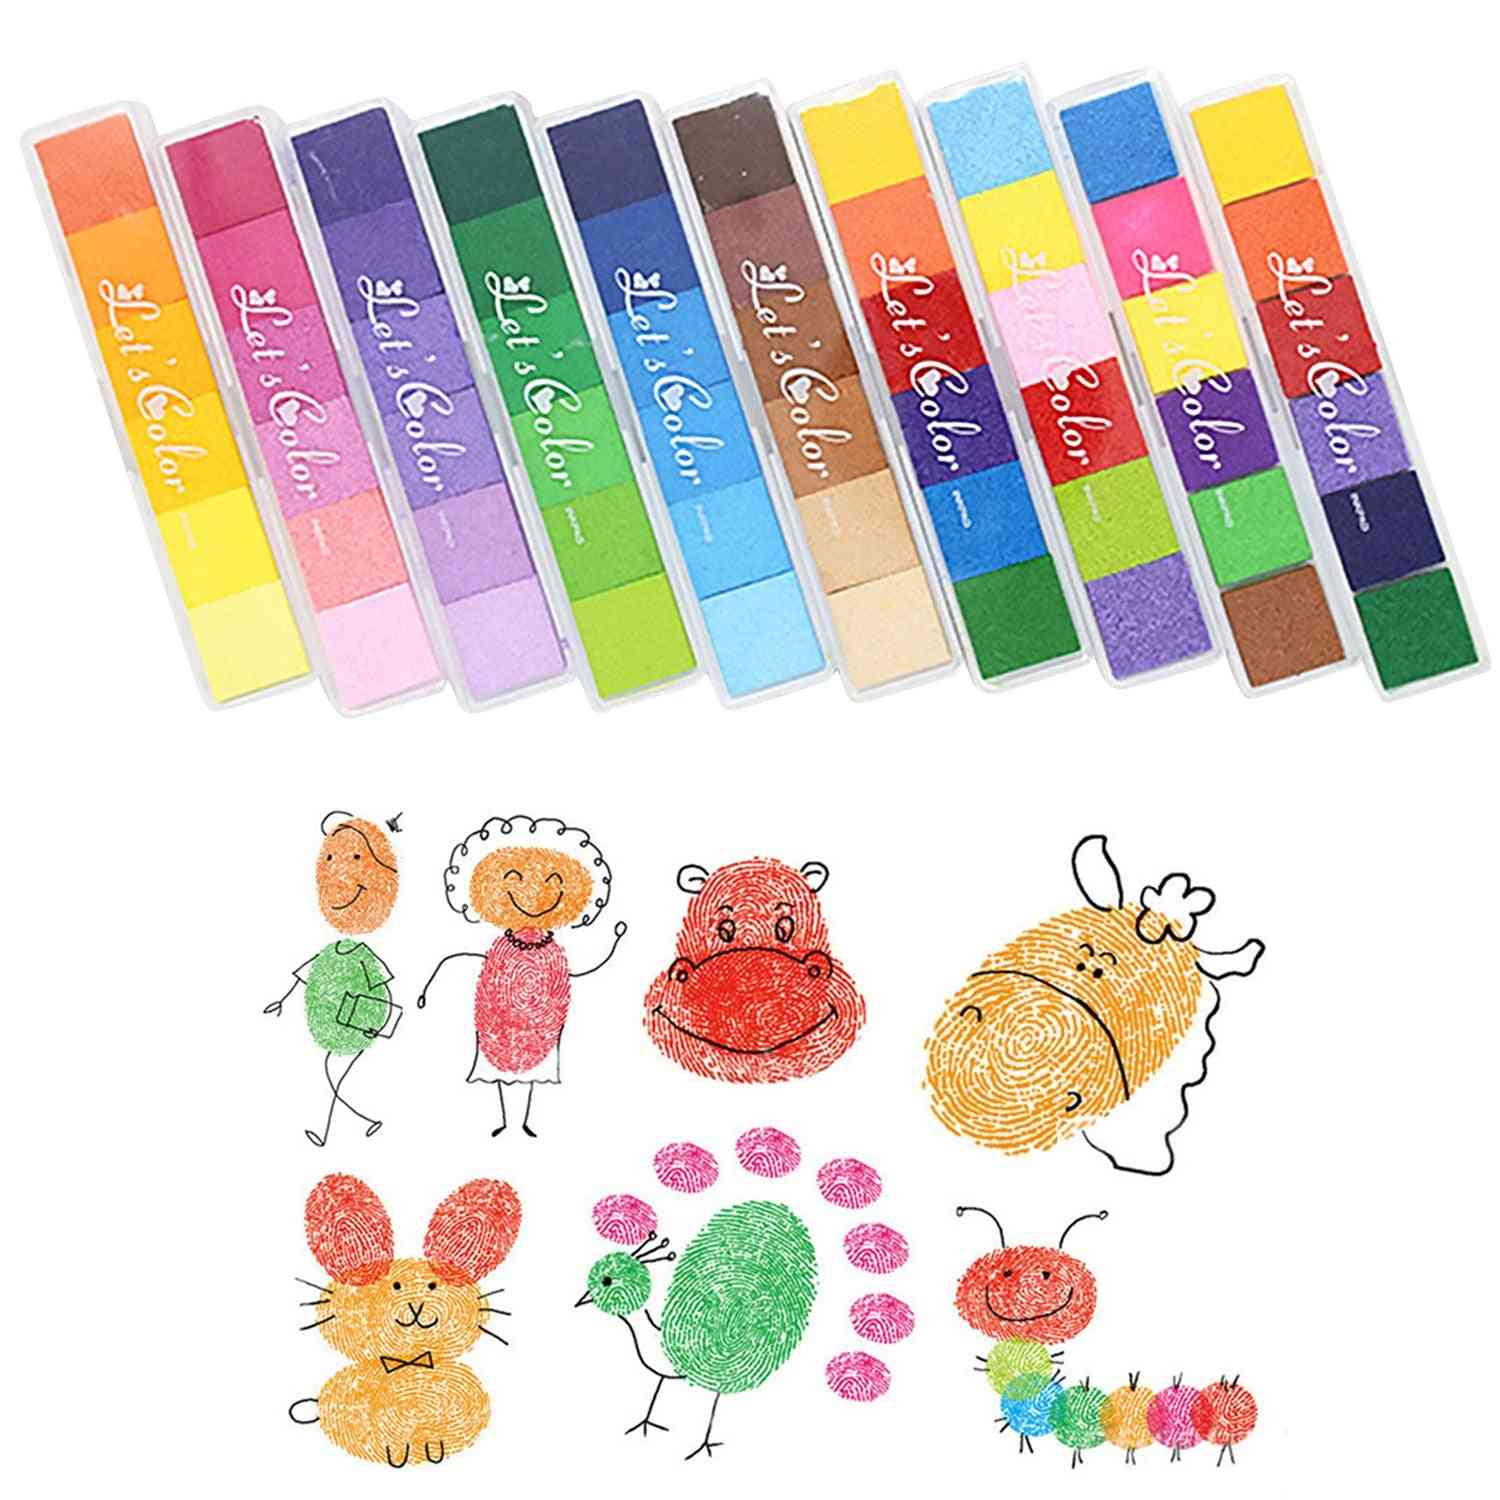 Non-toxic Washable Ink Pad, Scrapbooking Finger Painting Graffiti Toy